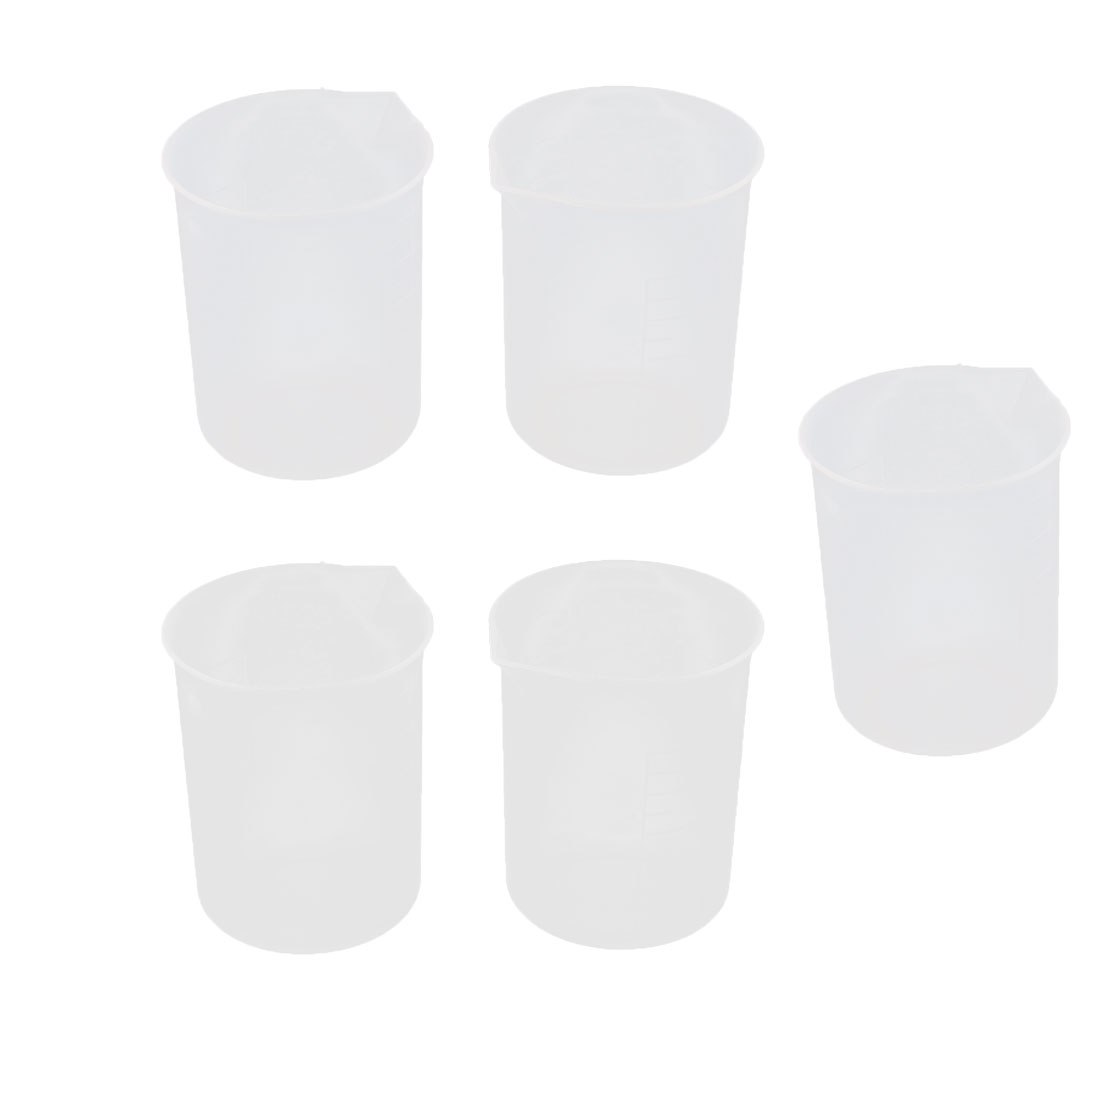 Home Kitchenware Plastic Water Oil Rice Measurement Cup Clear White 300ml 5 Pcs